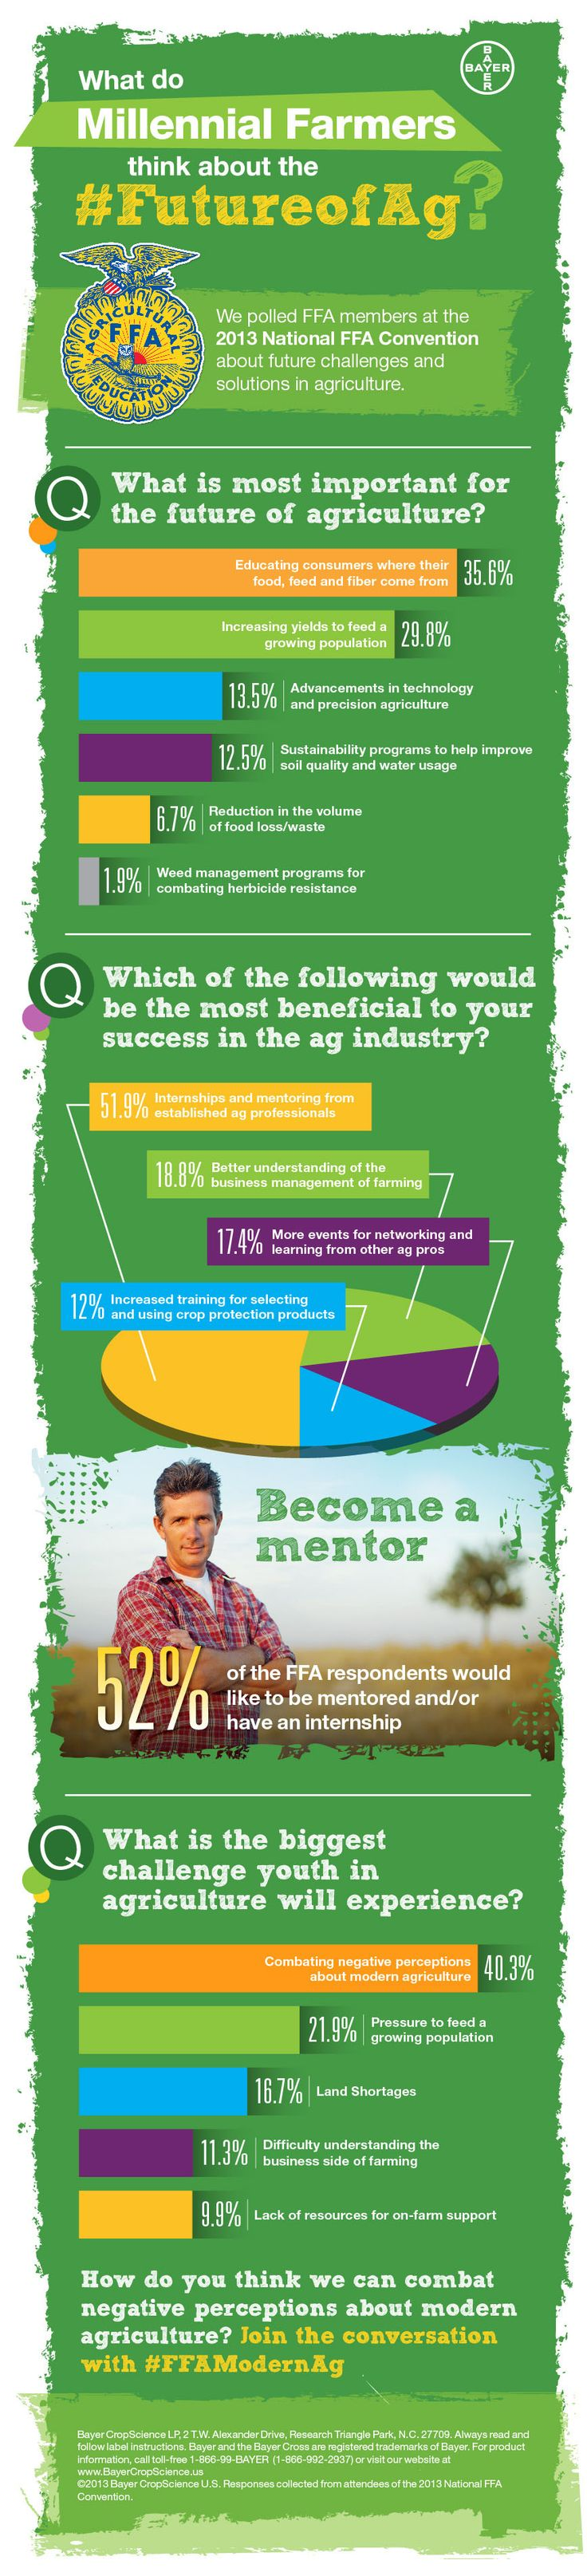 We surveyed students at the 2013 National FFA convention and found insightful data about their perception of modern ag http://www.bayercropscience.us/news/blog/2014/march/whats-eating-at-americas-next-generation-of-farmers